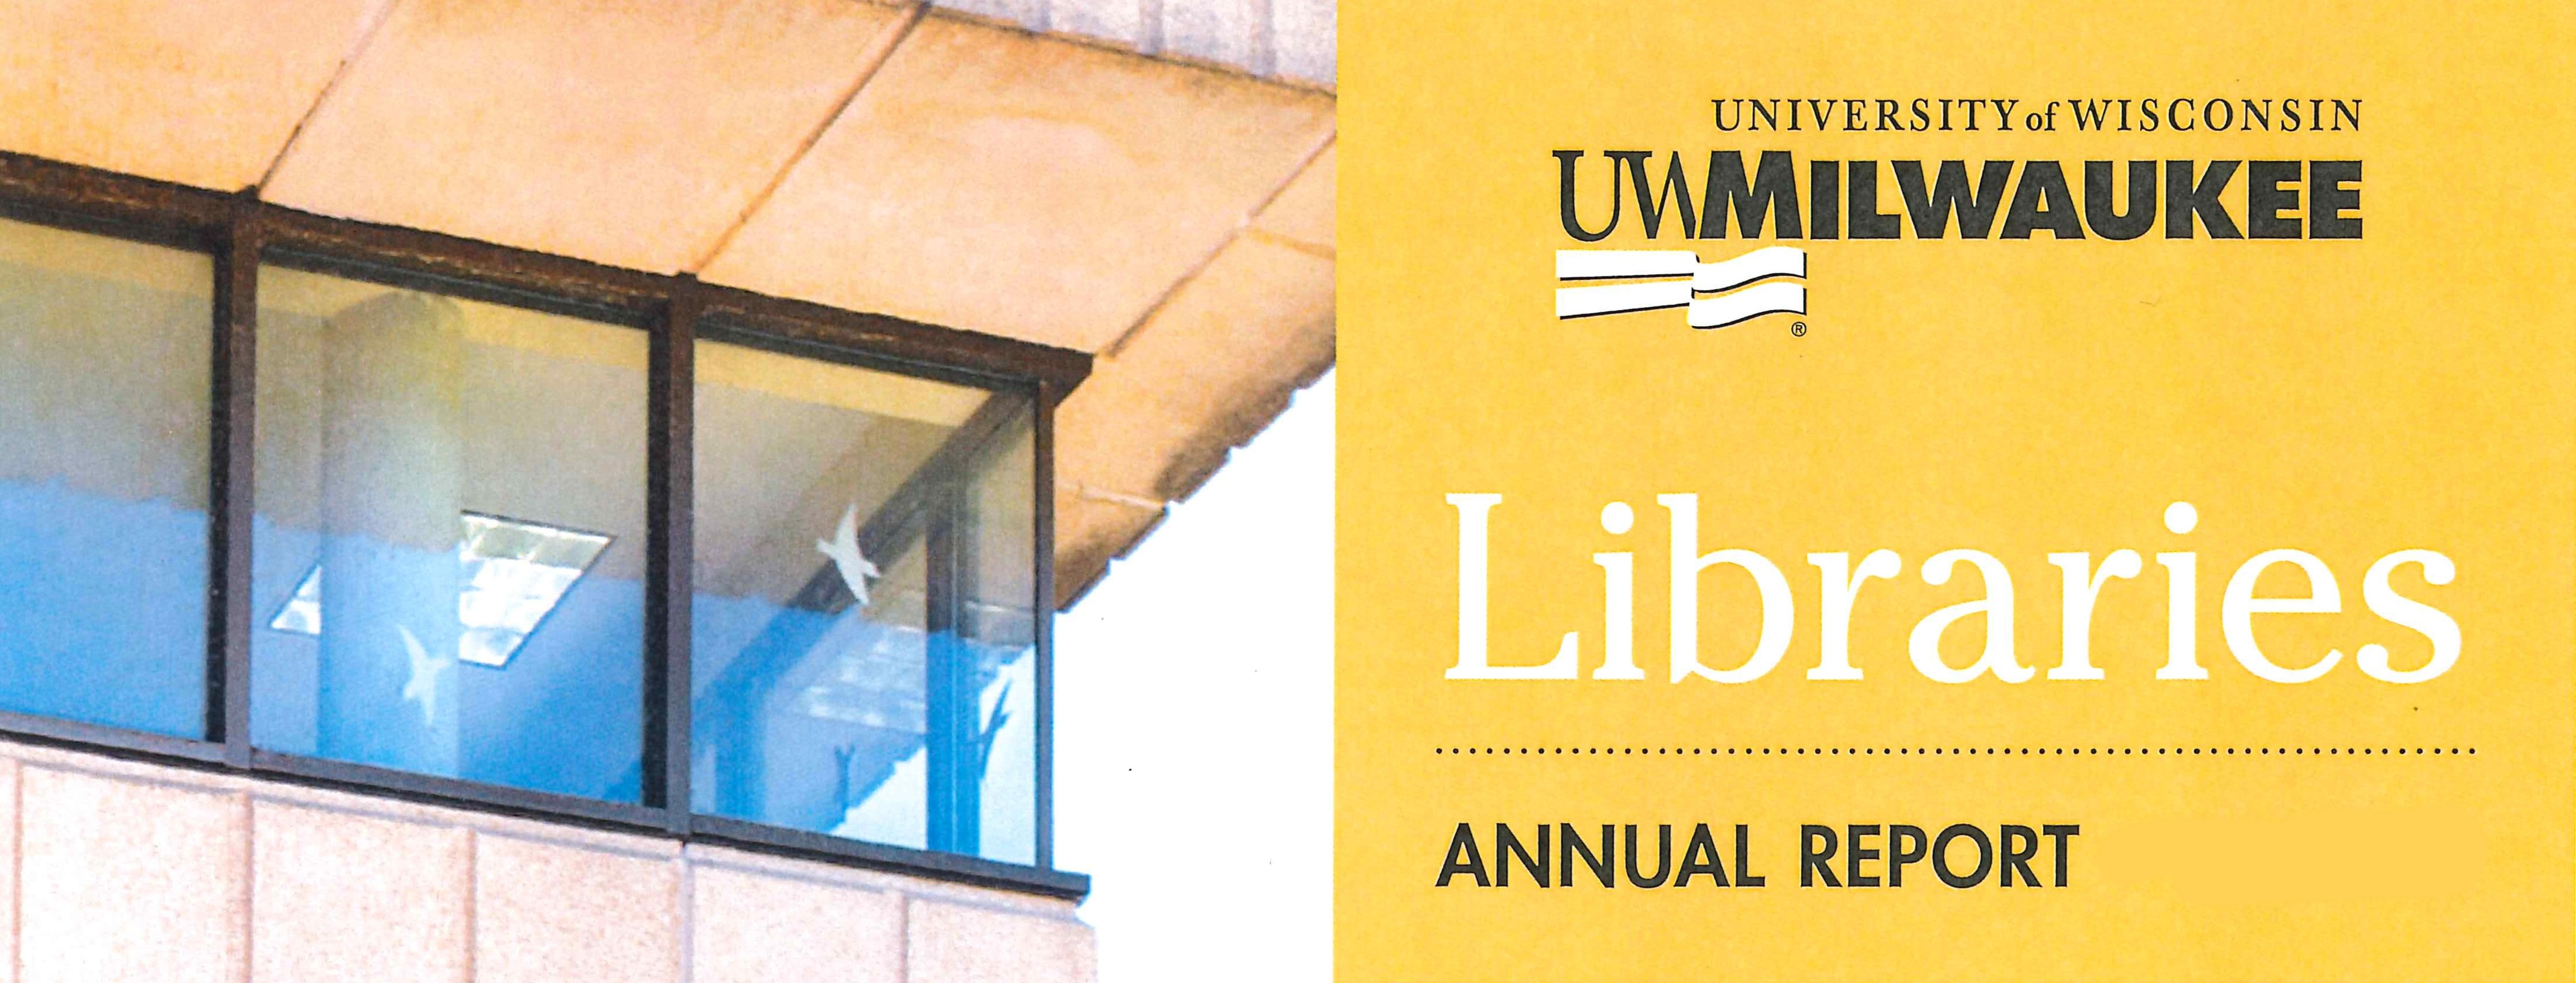 UWM Libraries annual report banner